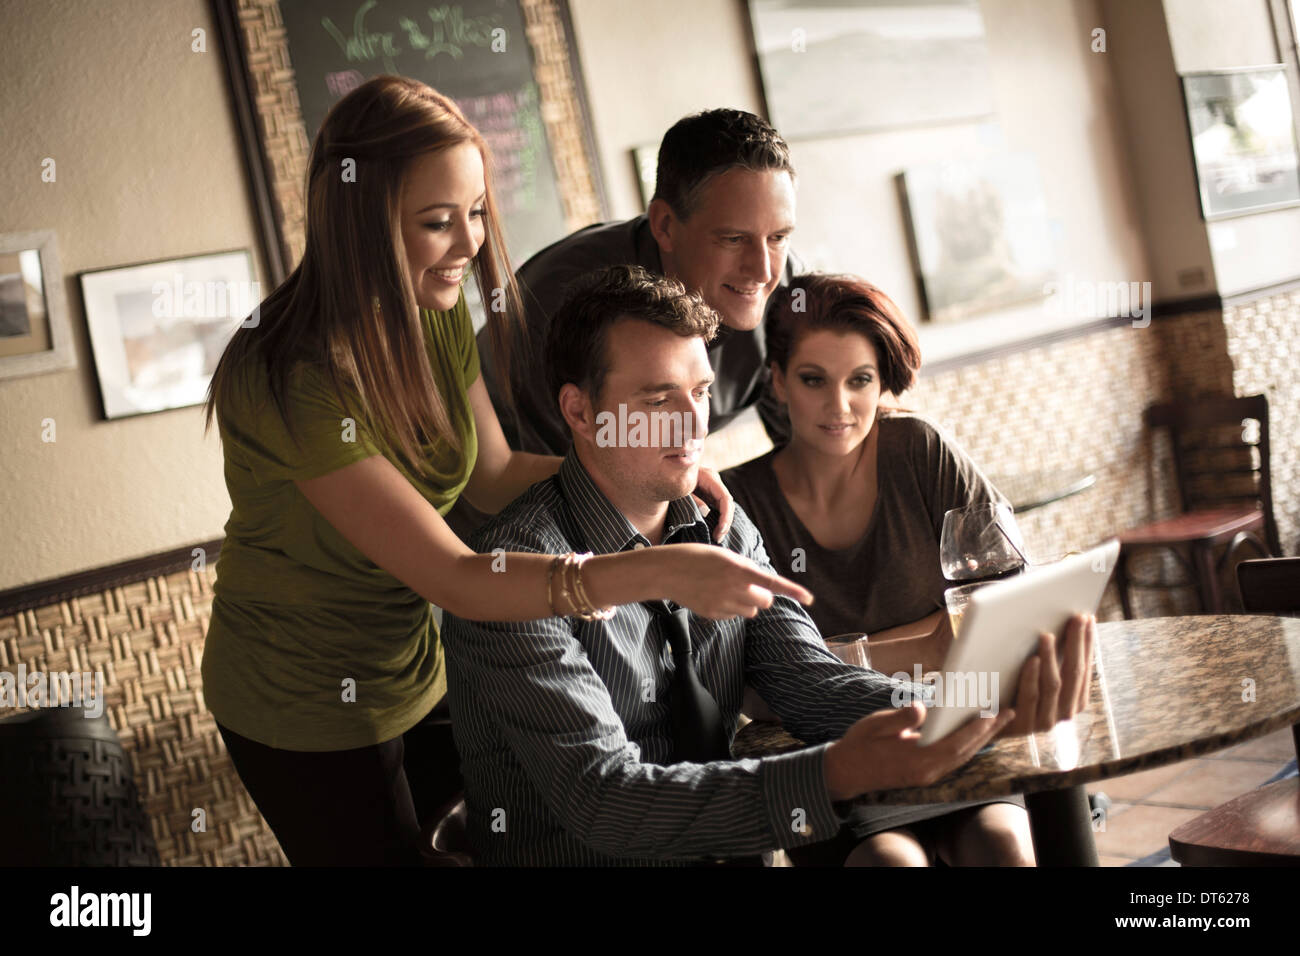 Friends looking at digital tablet in wine bar - Stock Image